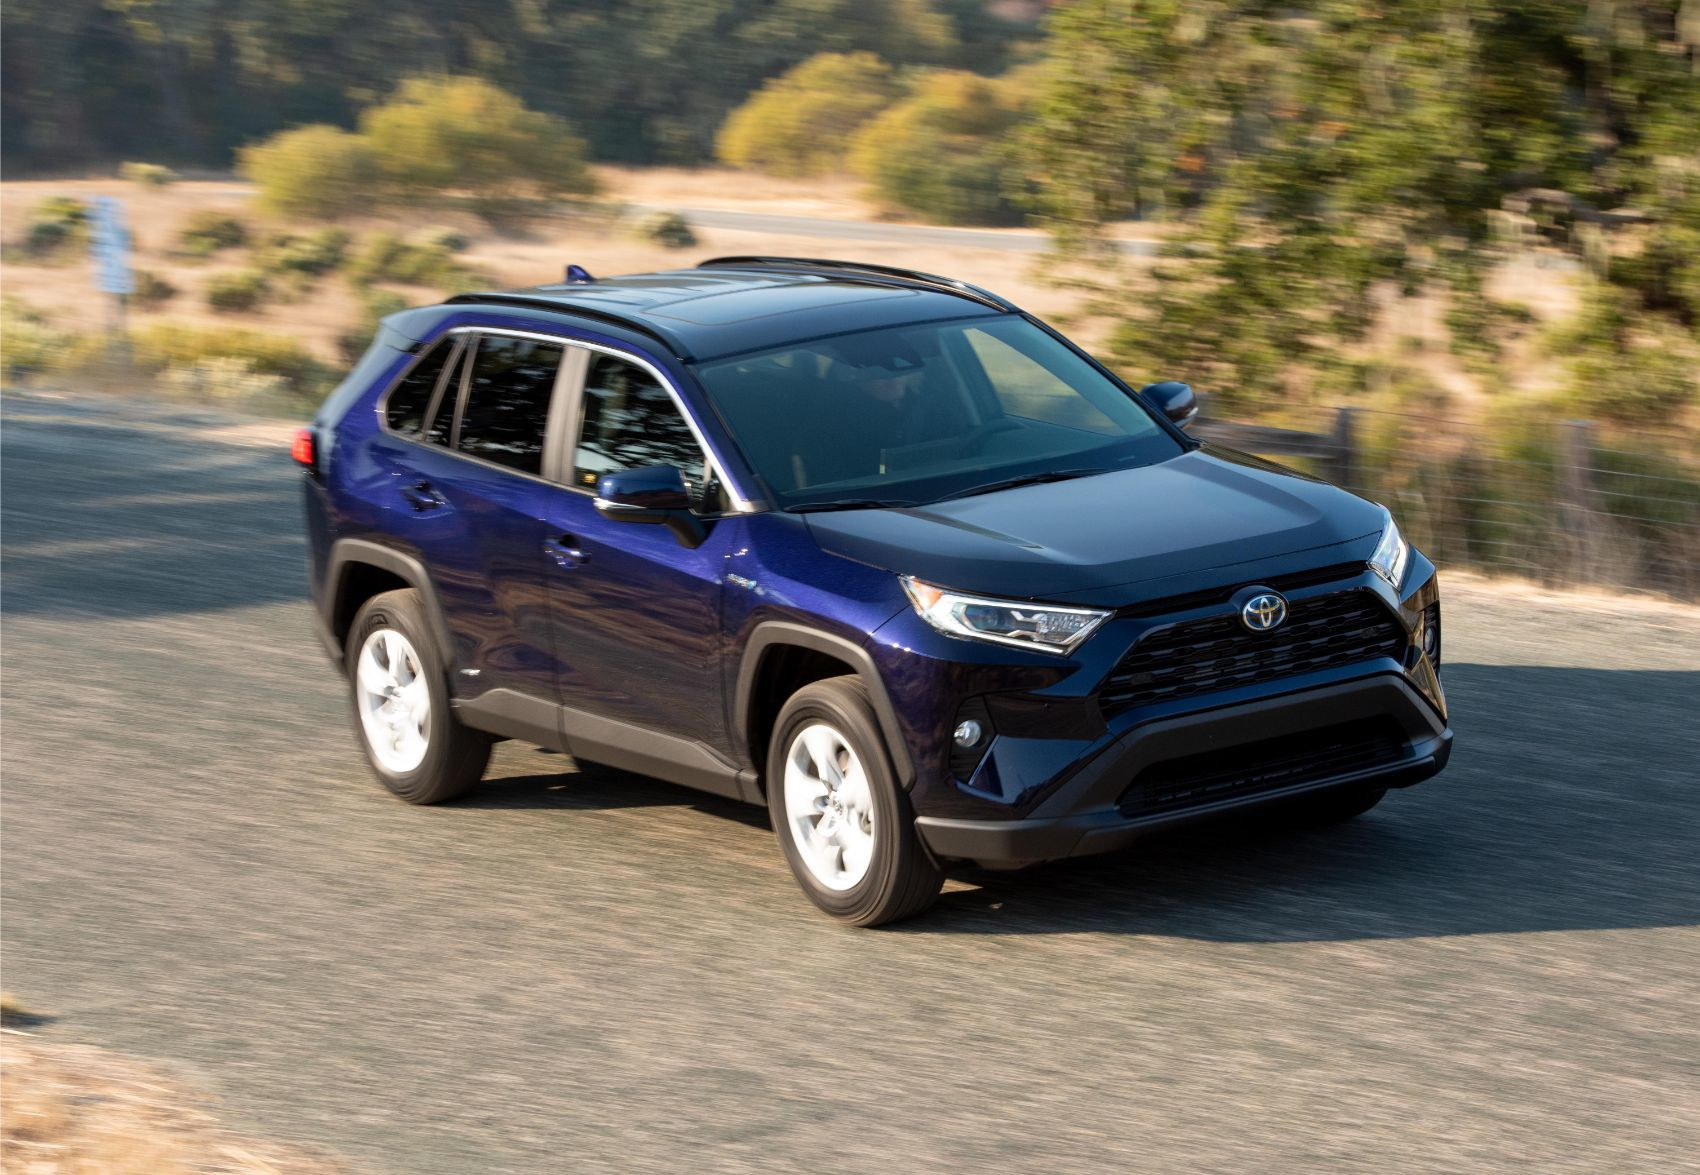 2020 Toyota Rav4 Hybrid Review Easy On The Gas Hard On The Eyes